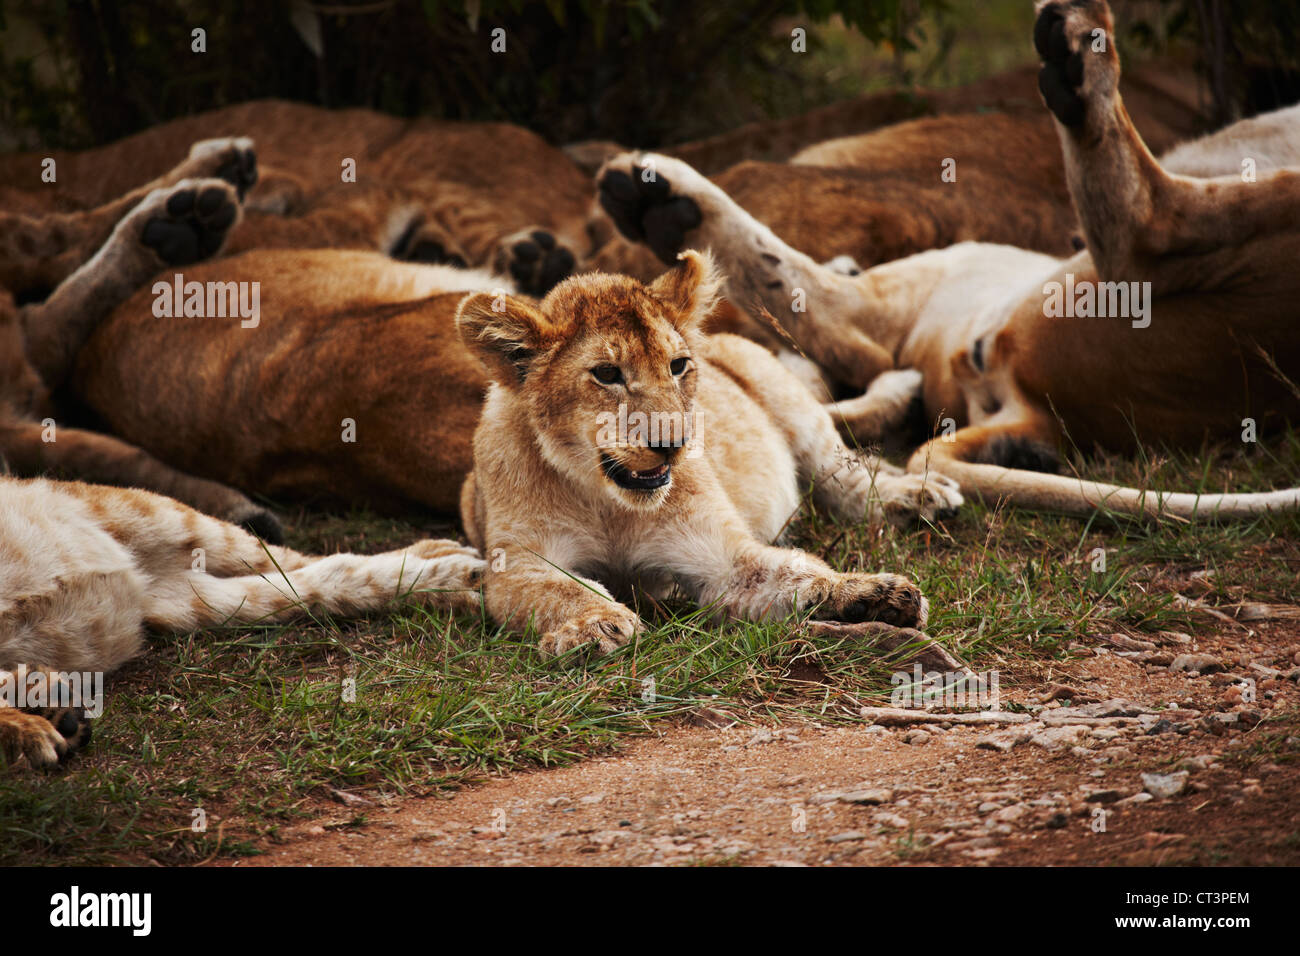 Lion pack relaxing in grass Photo Stock